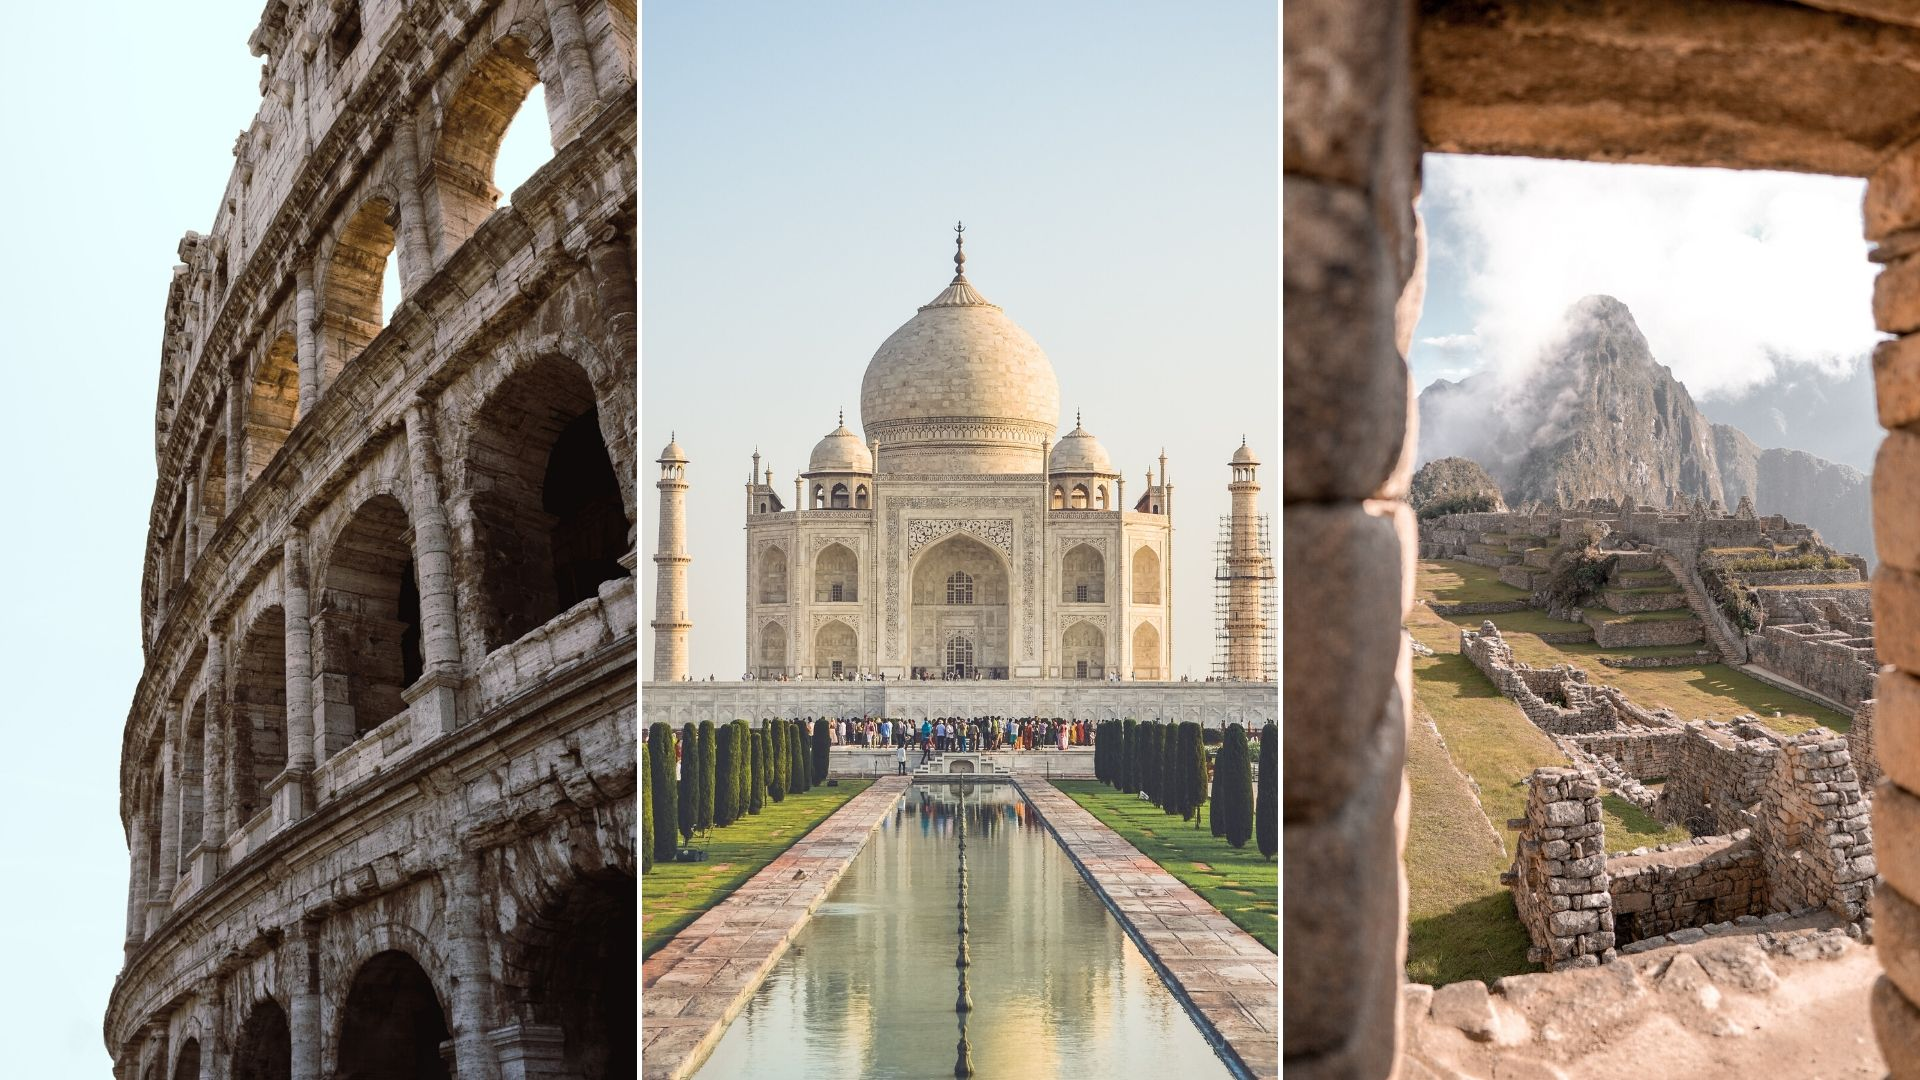 Attractions Around The World You Can Virtually Tour From Your Couch - From The Great Wall of China to The Acropolis in Greece